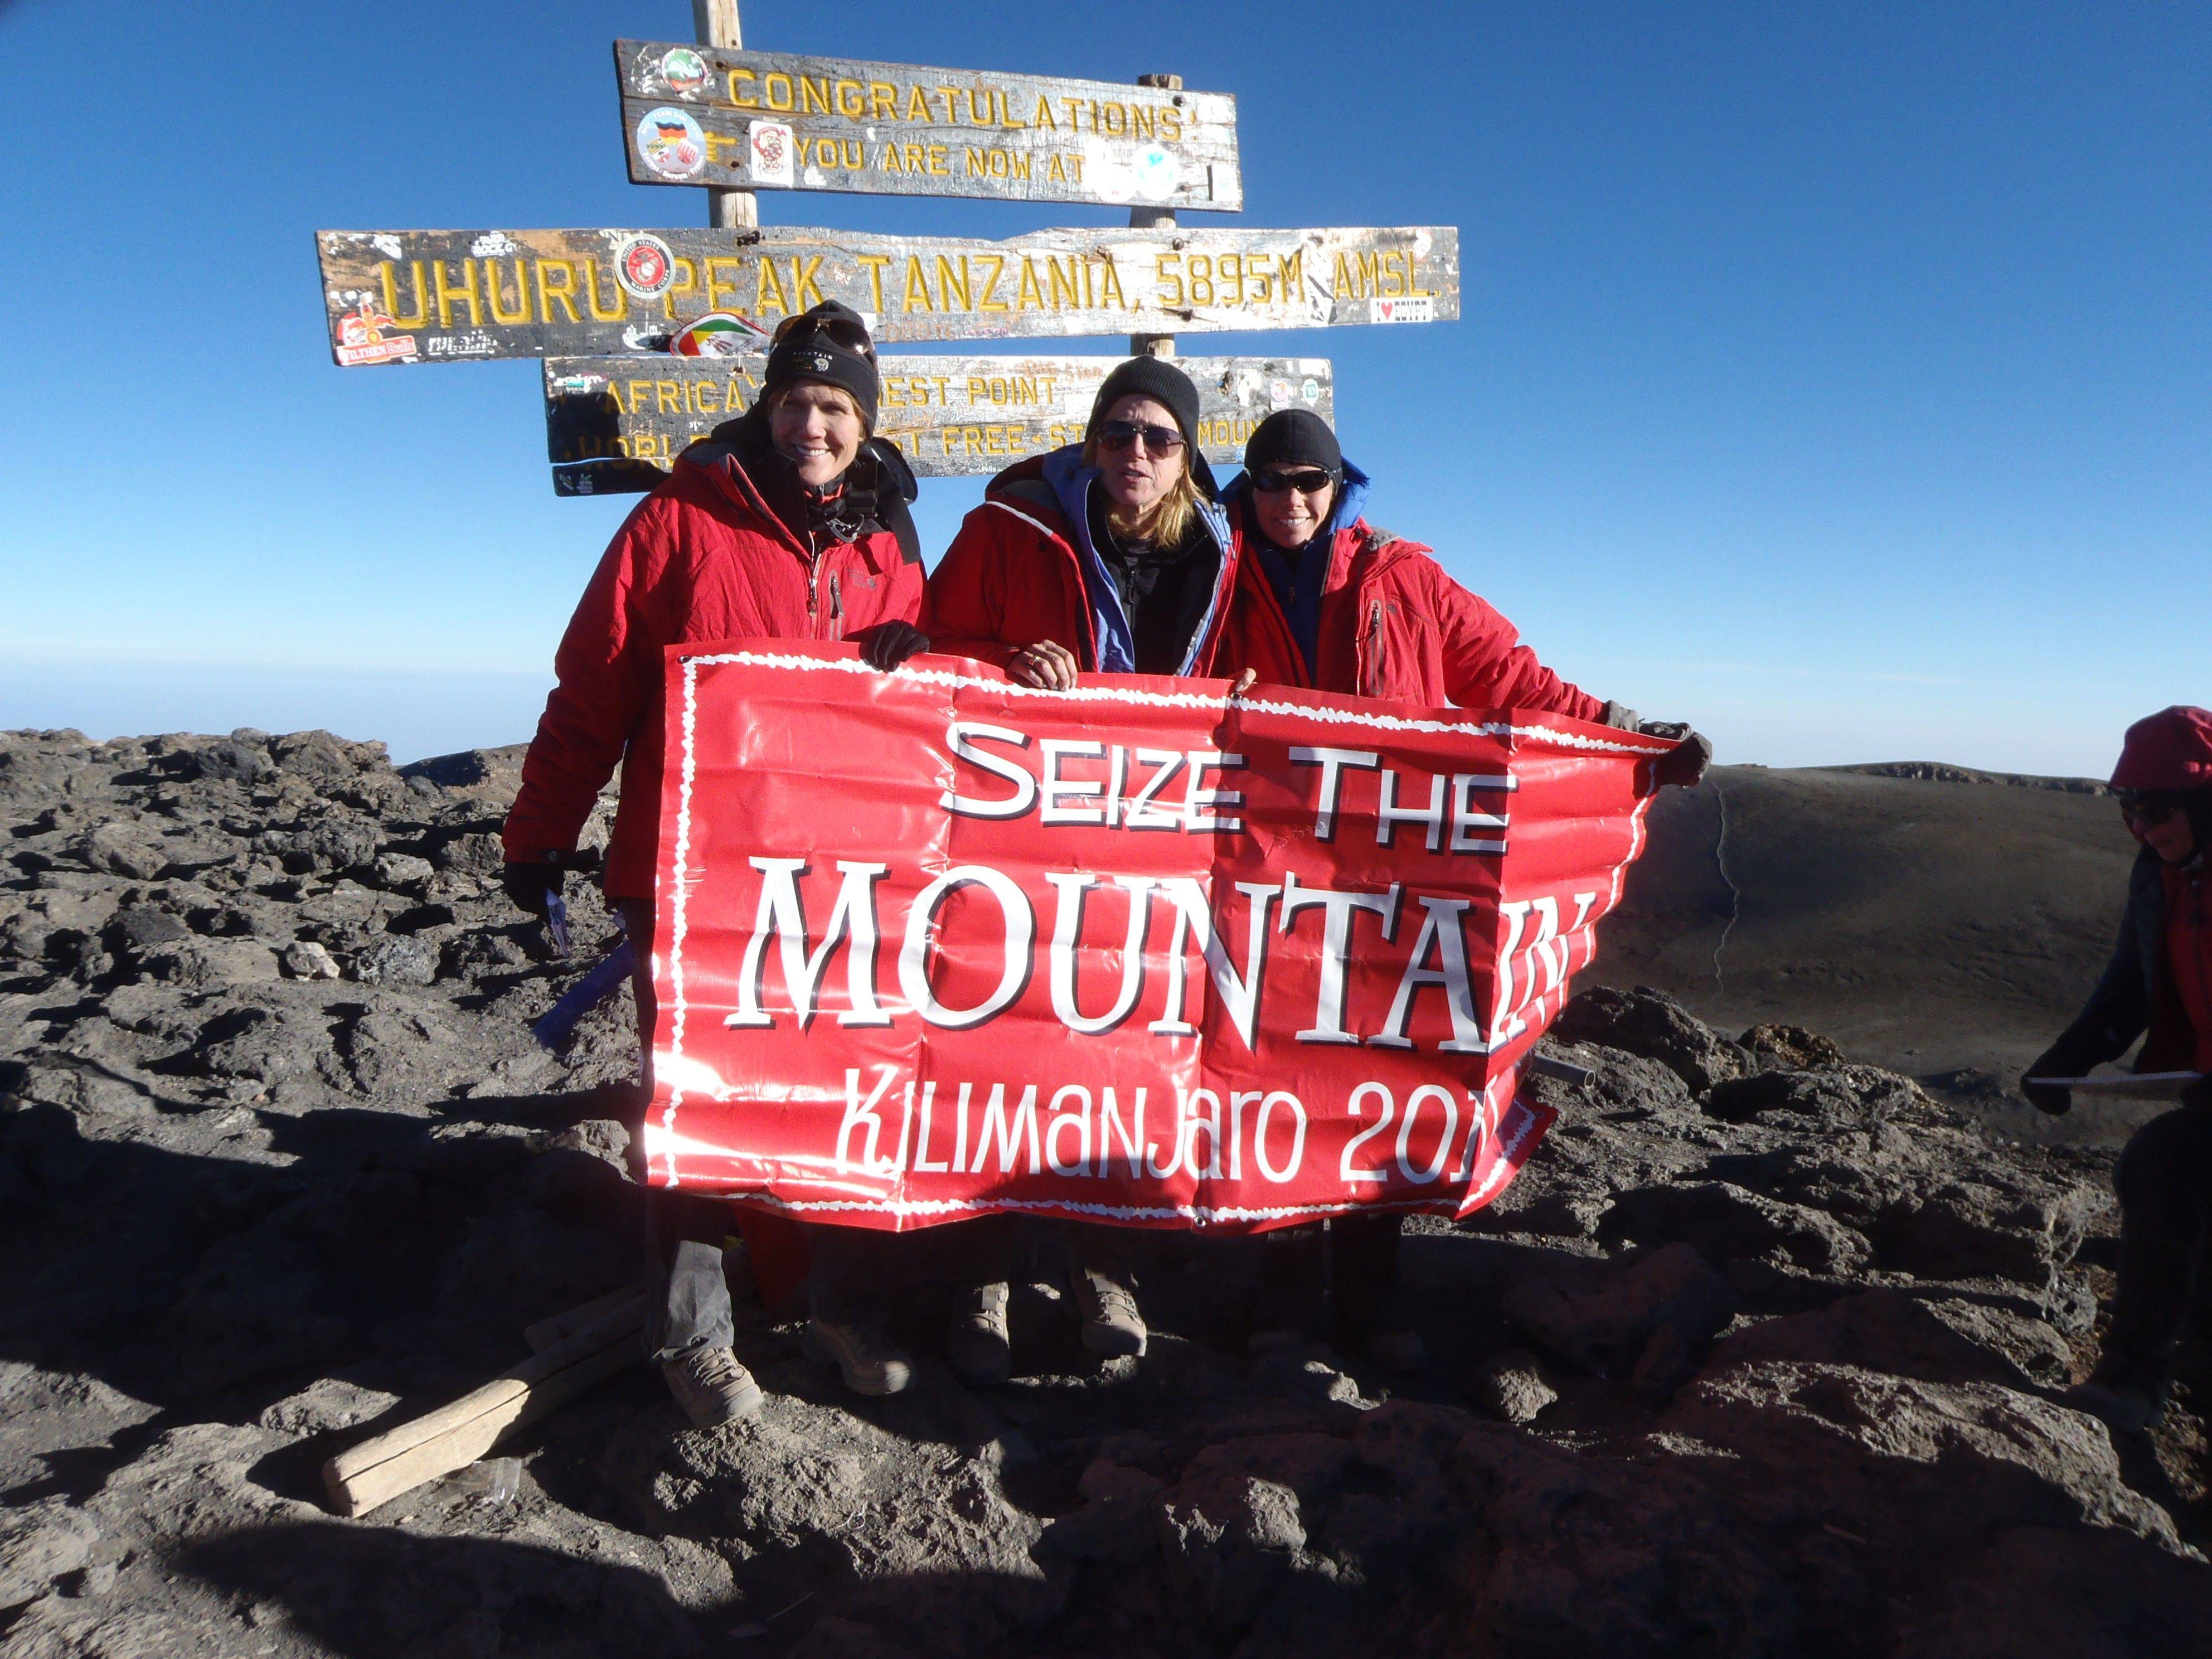 Teri Goudie, center, and her friends, Lisa Stafford, left, and Patty Orler, all of Hinsdale, climbed to the summit of Mount Kilimanjaro in Tanzania. They reached the top Sept. 24, 2010.